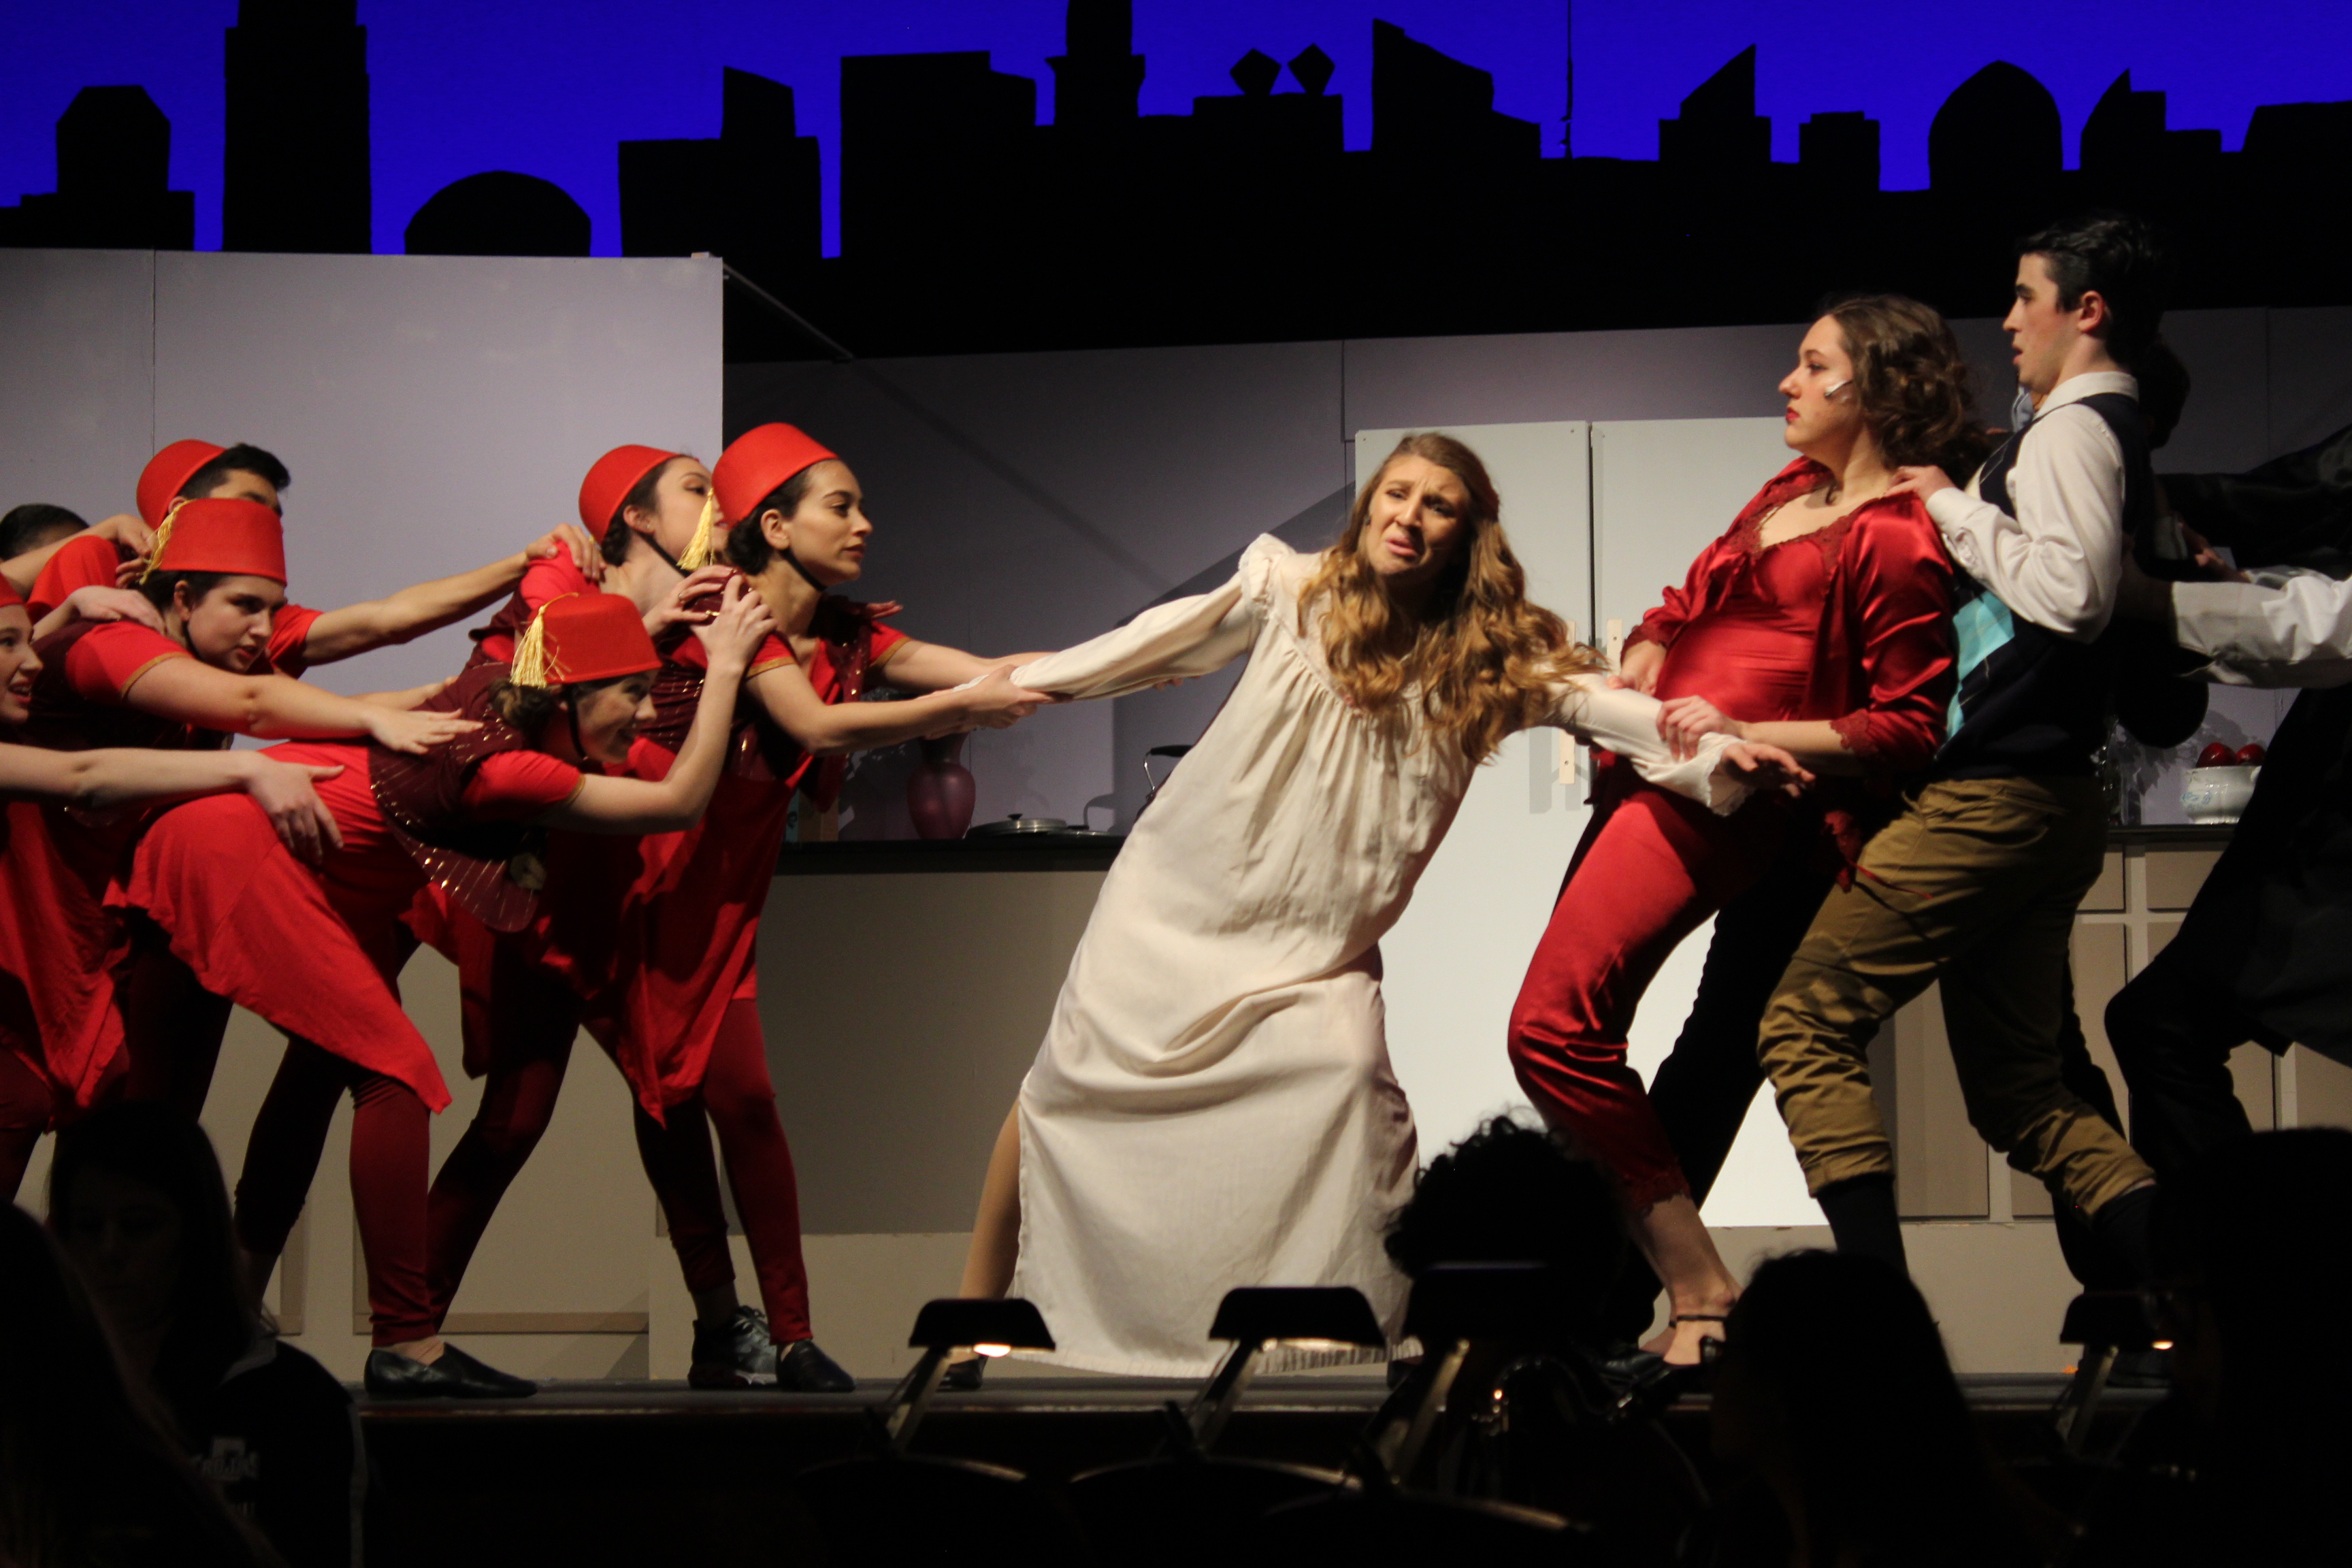 Upper Merion - Drowsy Chaperone 3